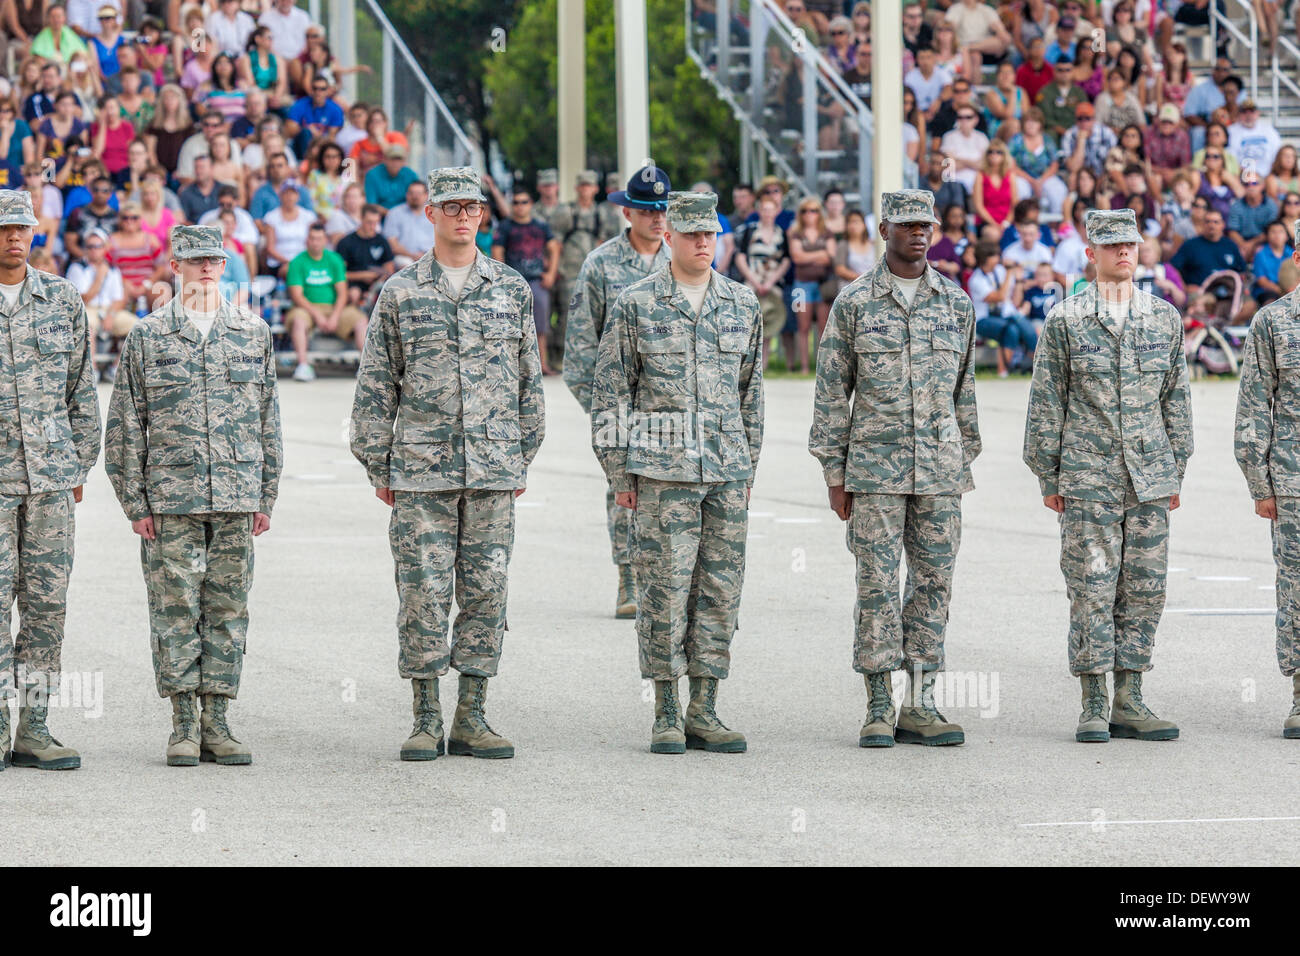 Airmen standing at attention during United States Air Force basic training graduation ceremonies In San Antonio, Texas - Stock Image